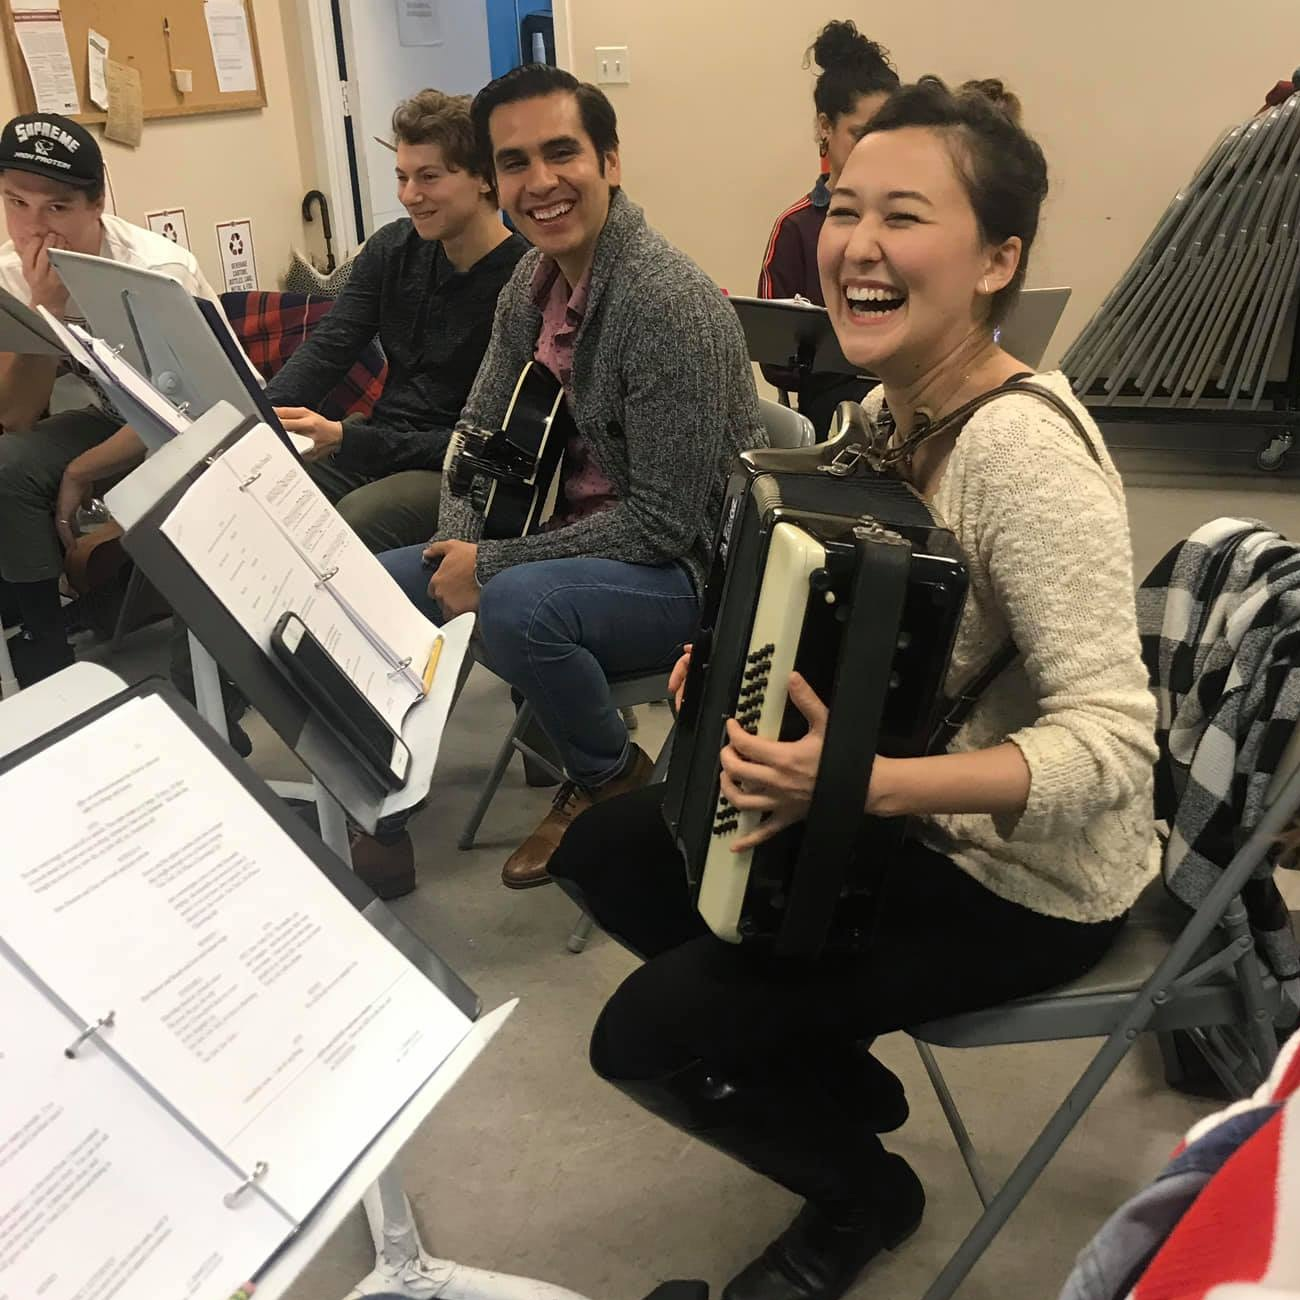 Emily rehearsing with accordion